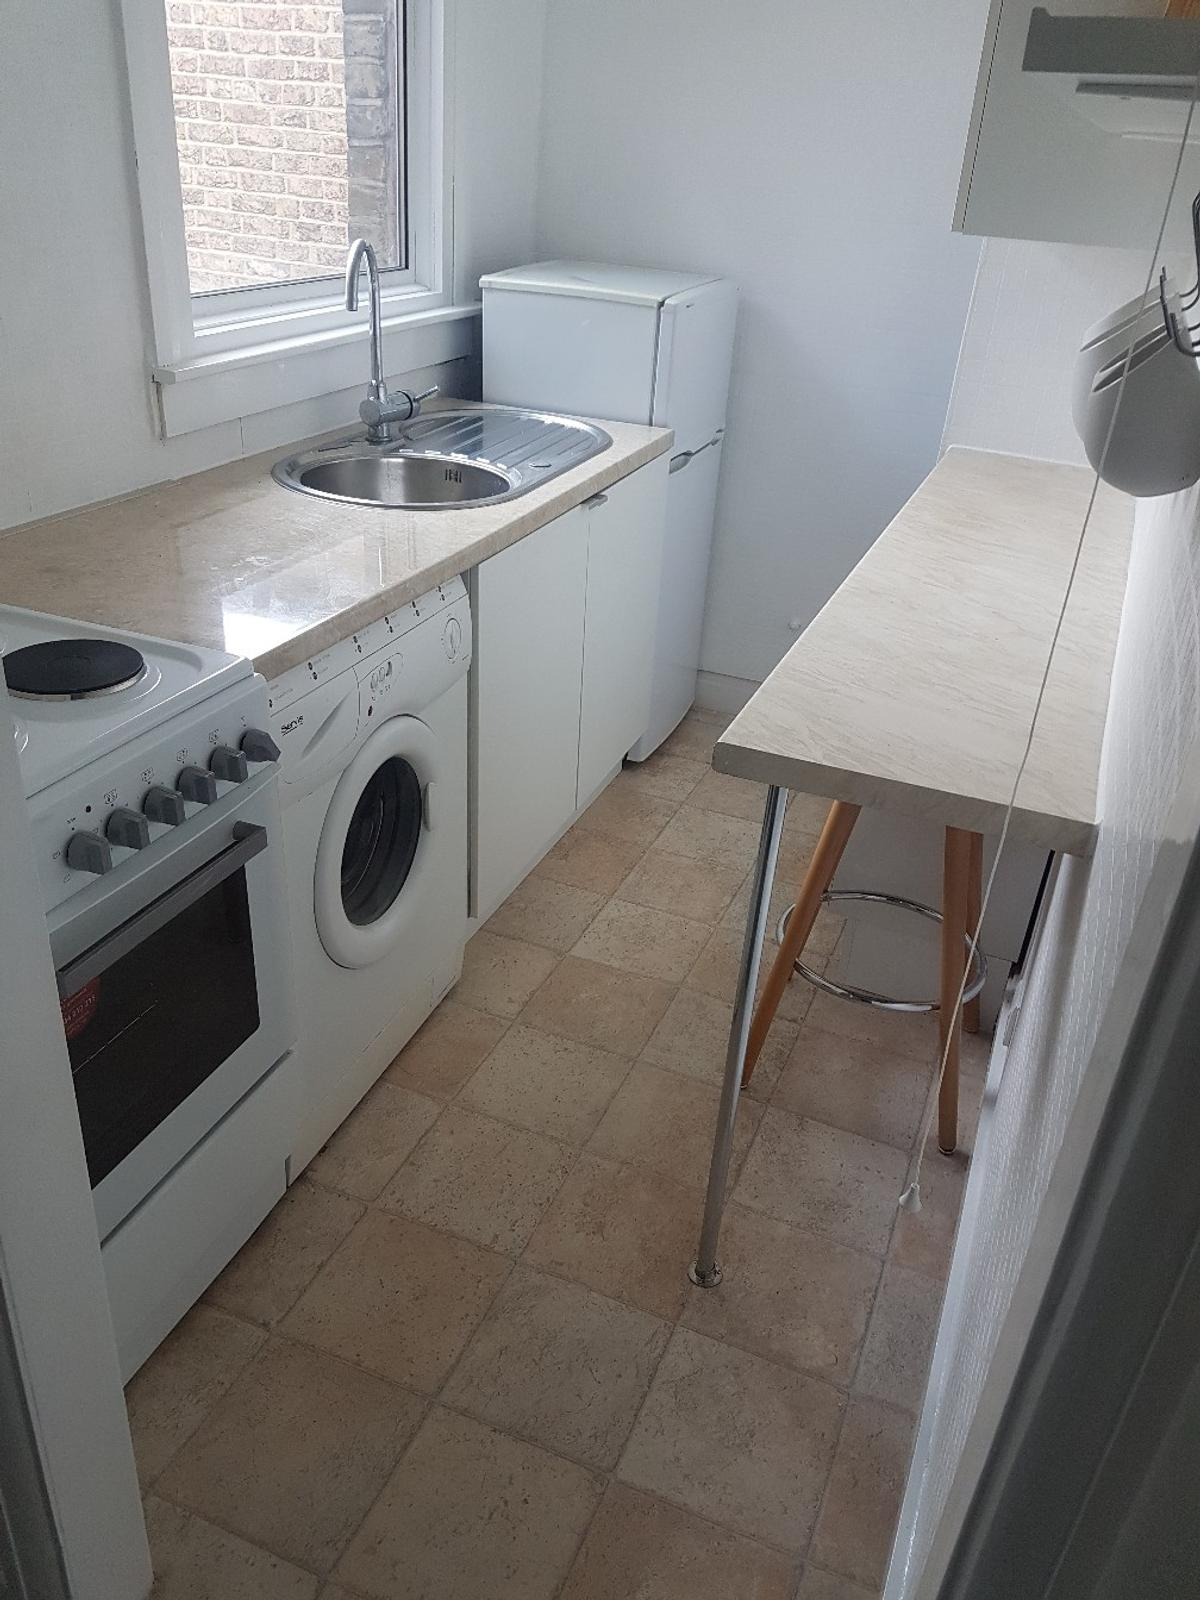 One bed room flat ready to rent in E4 London für £ 950,00